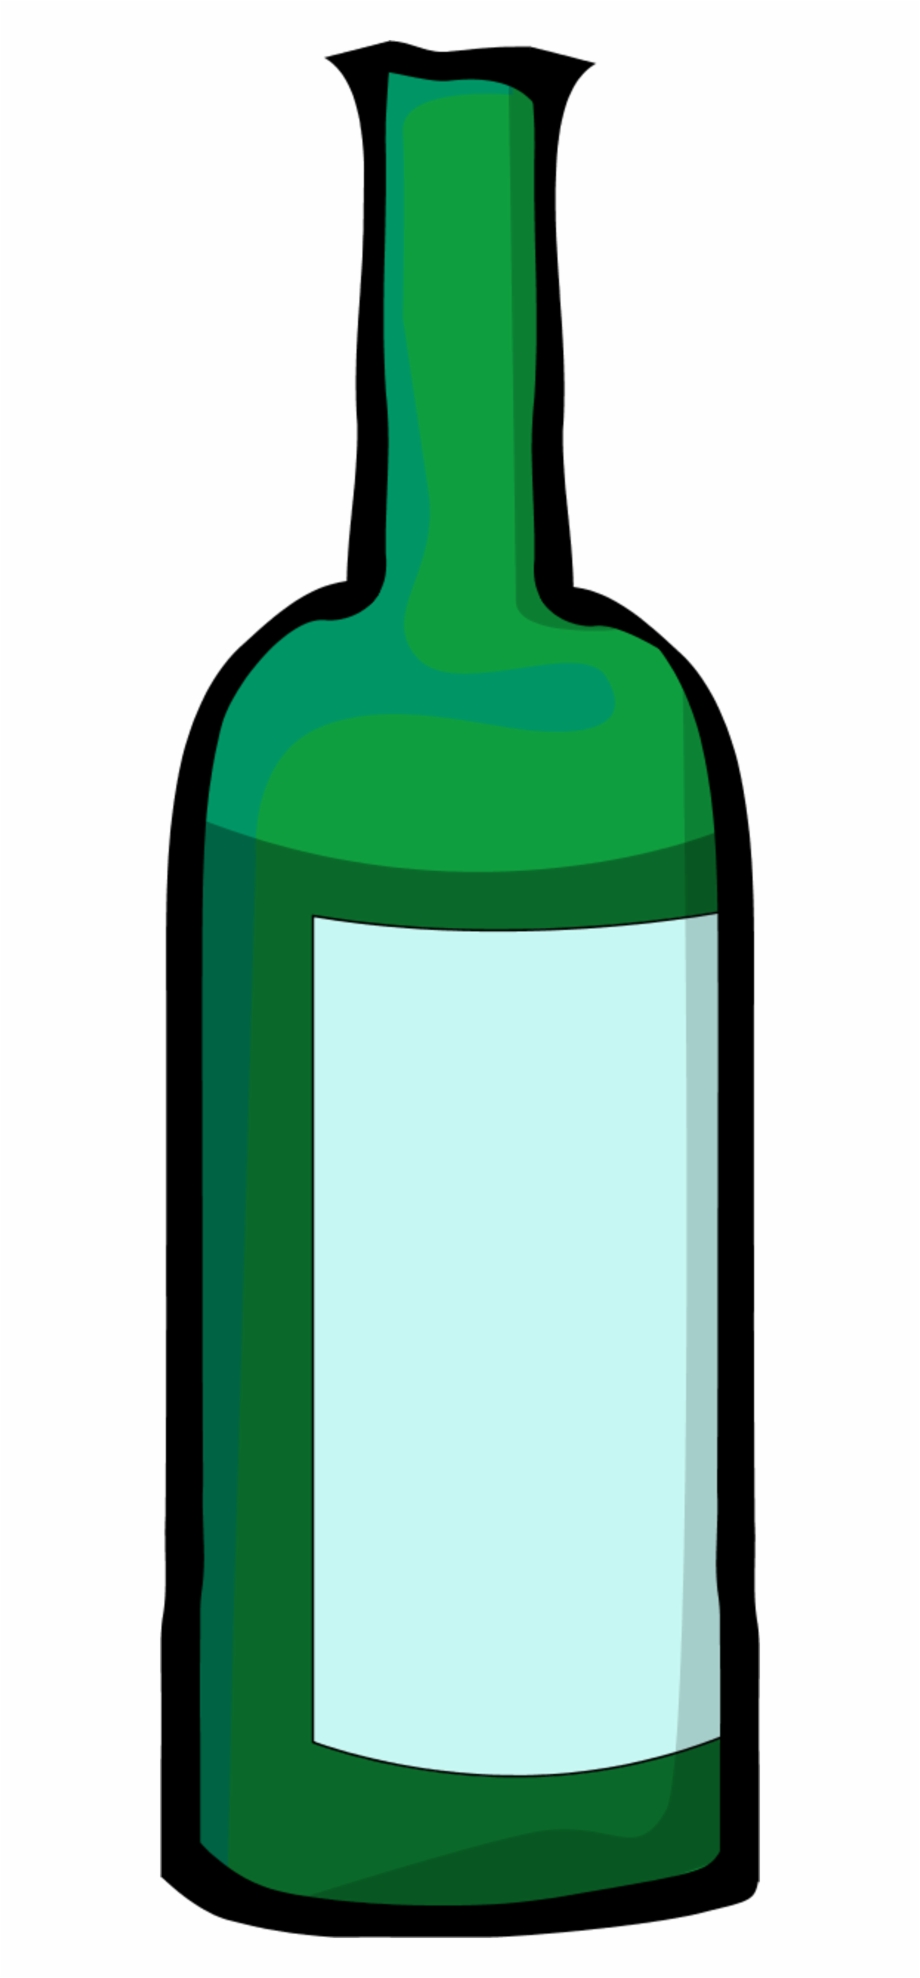 Bottle clipart. Green wine clip art